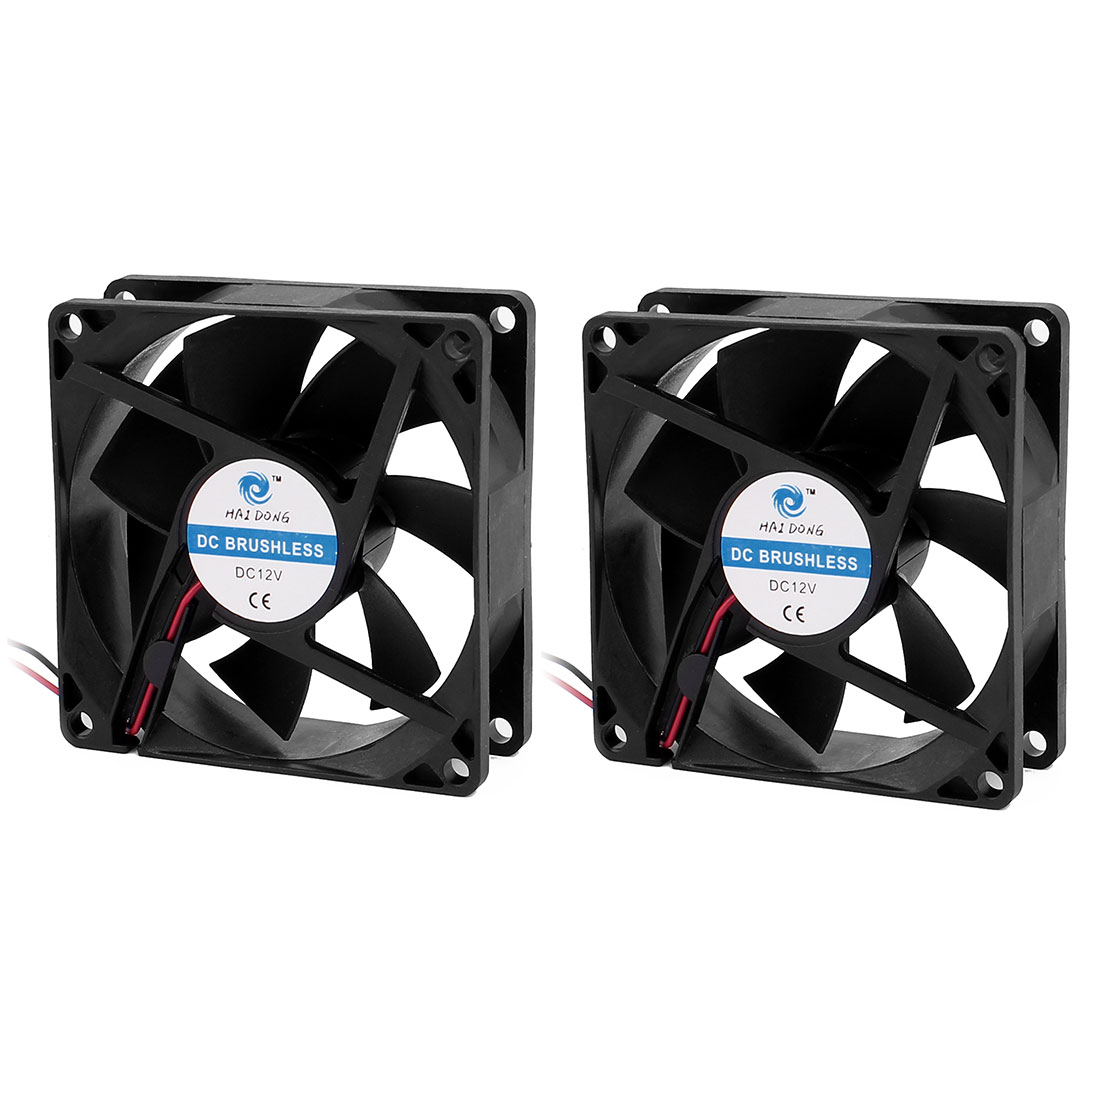 2 Pcs 8x8x2.5cm DC 12V 0.11A PC Case Heatsink Cooling Fan Black